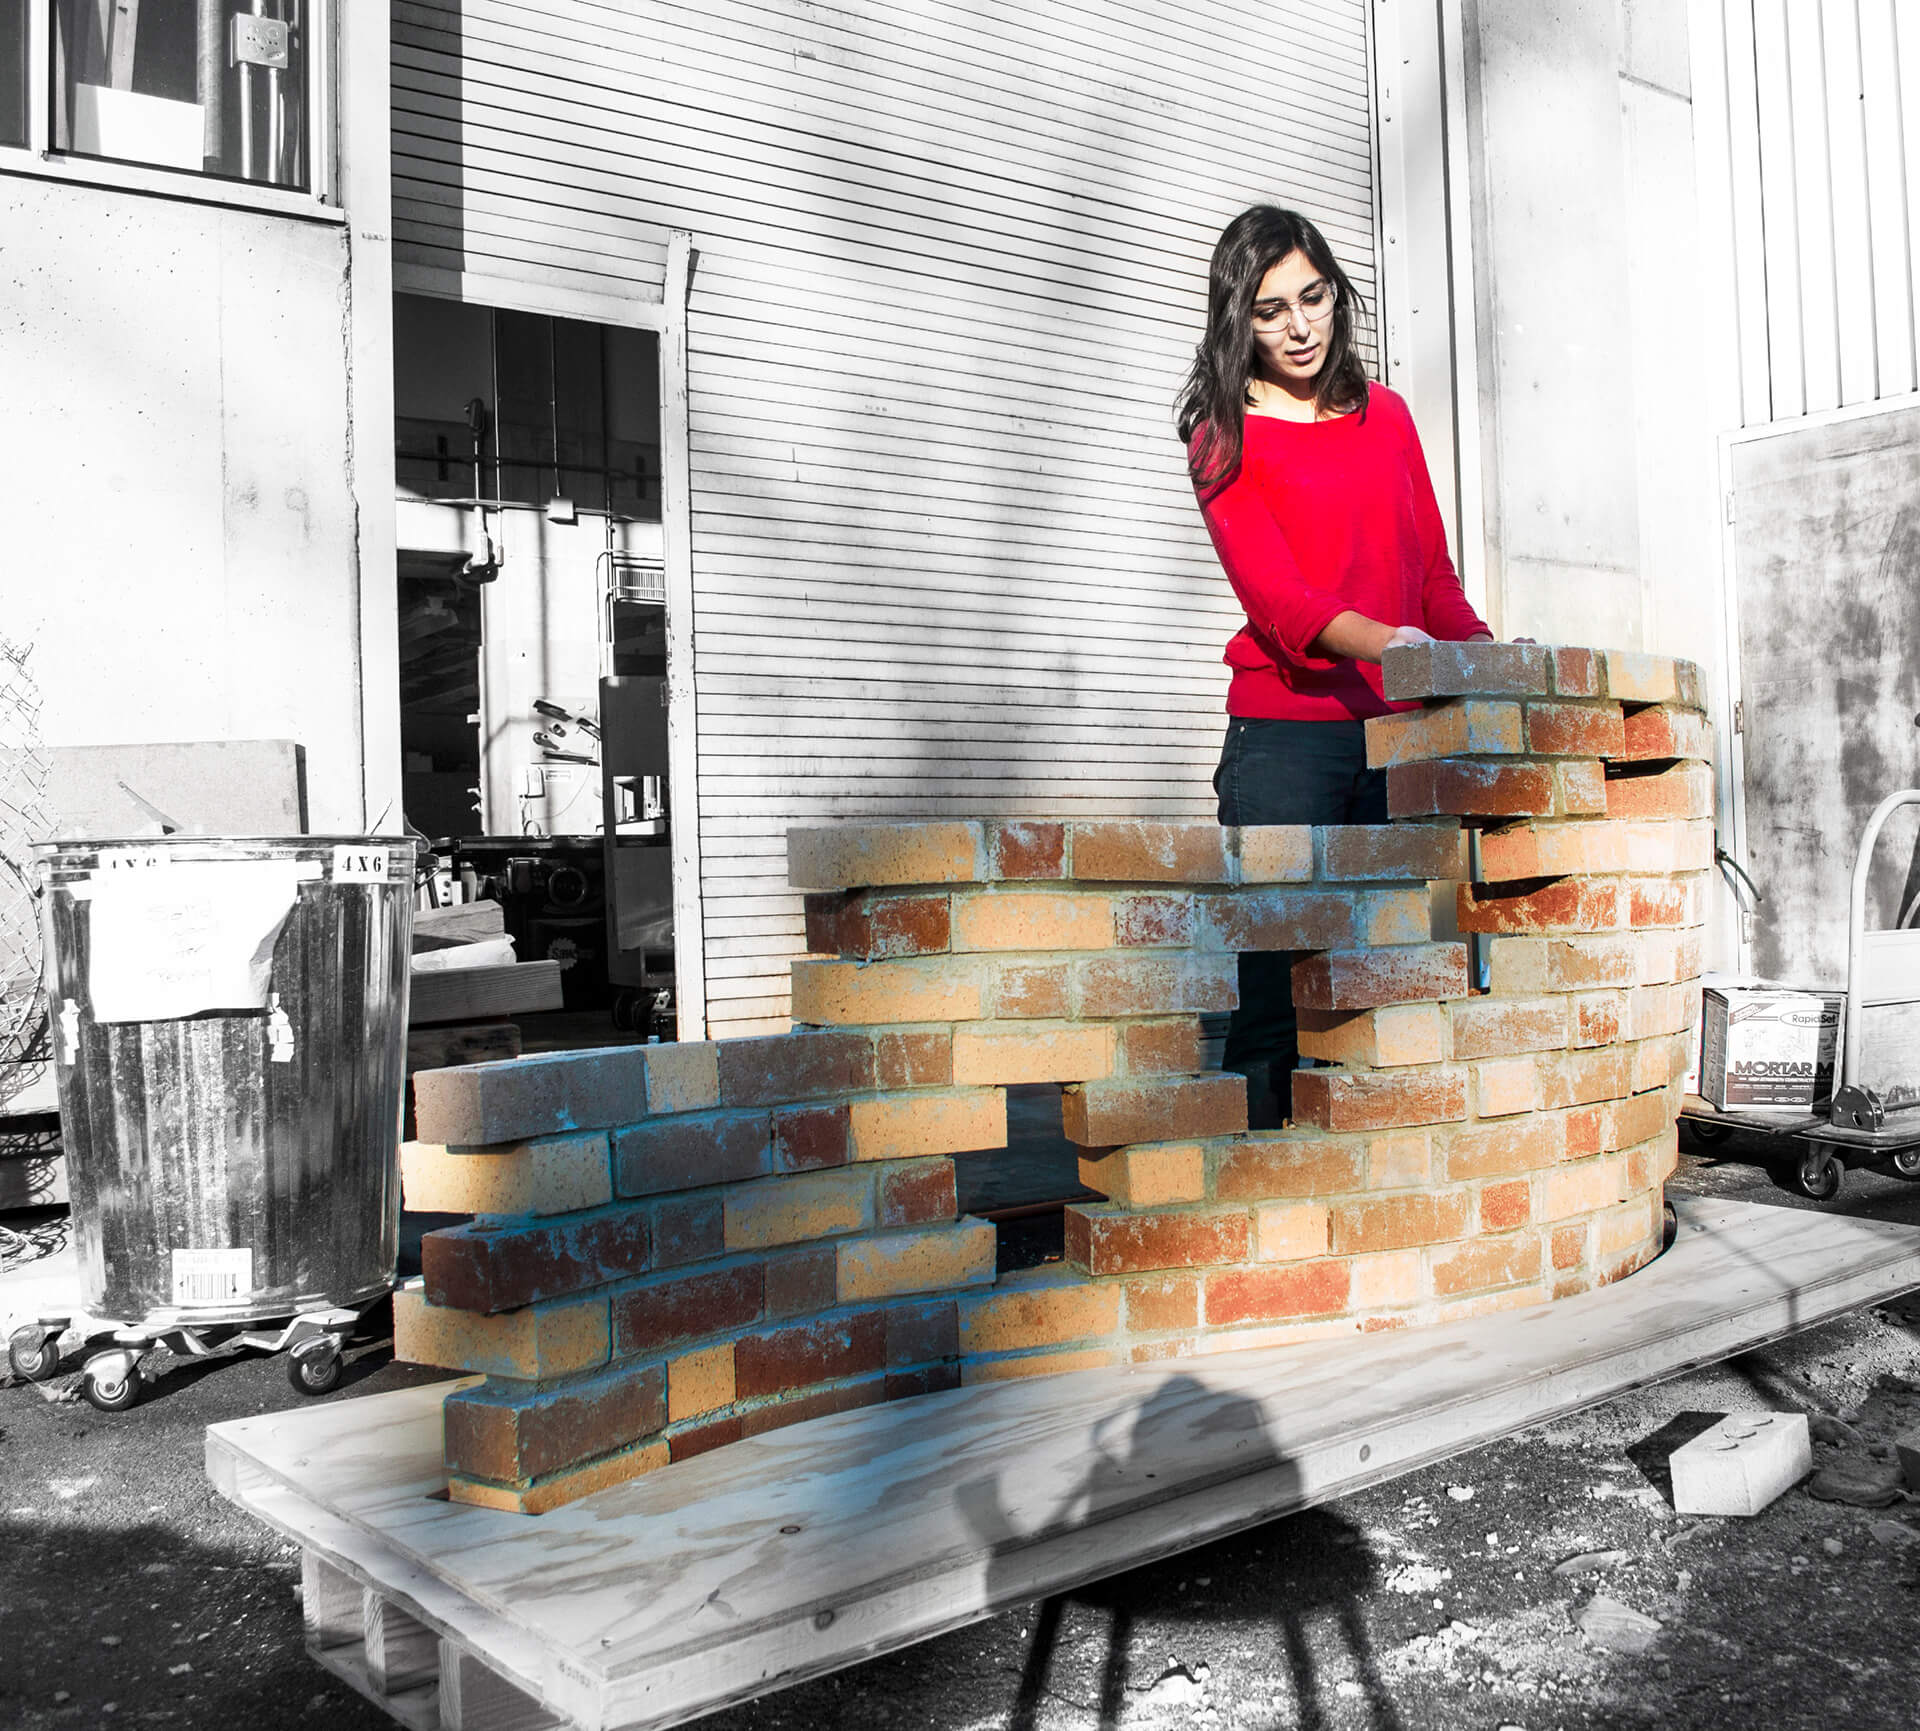 Screen Maker: a low-tech digital mason; the simple, symmetric and modular form of bricks allows for different ways of unit-to-unit connection, which can create a variety of forms and patterns |Yasaman Esmaili | Studio Chahar | STIRworld